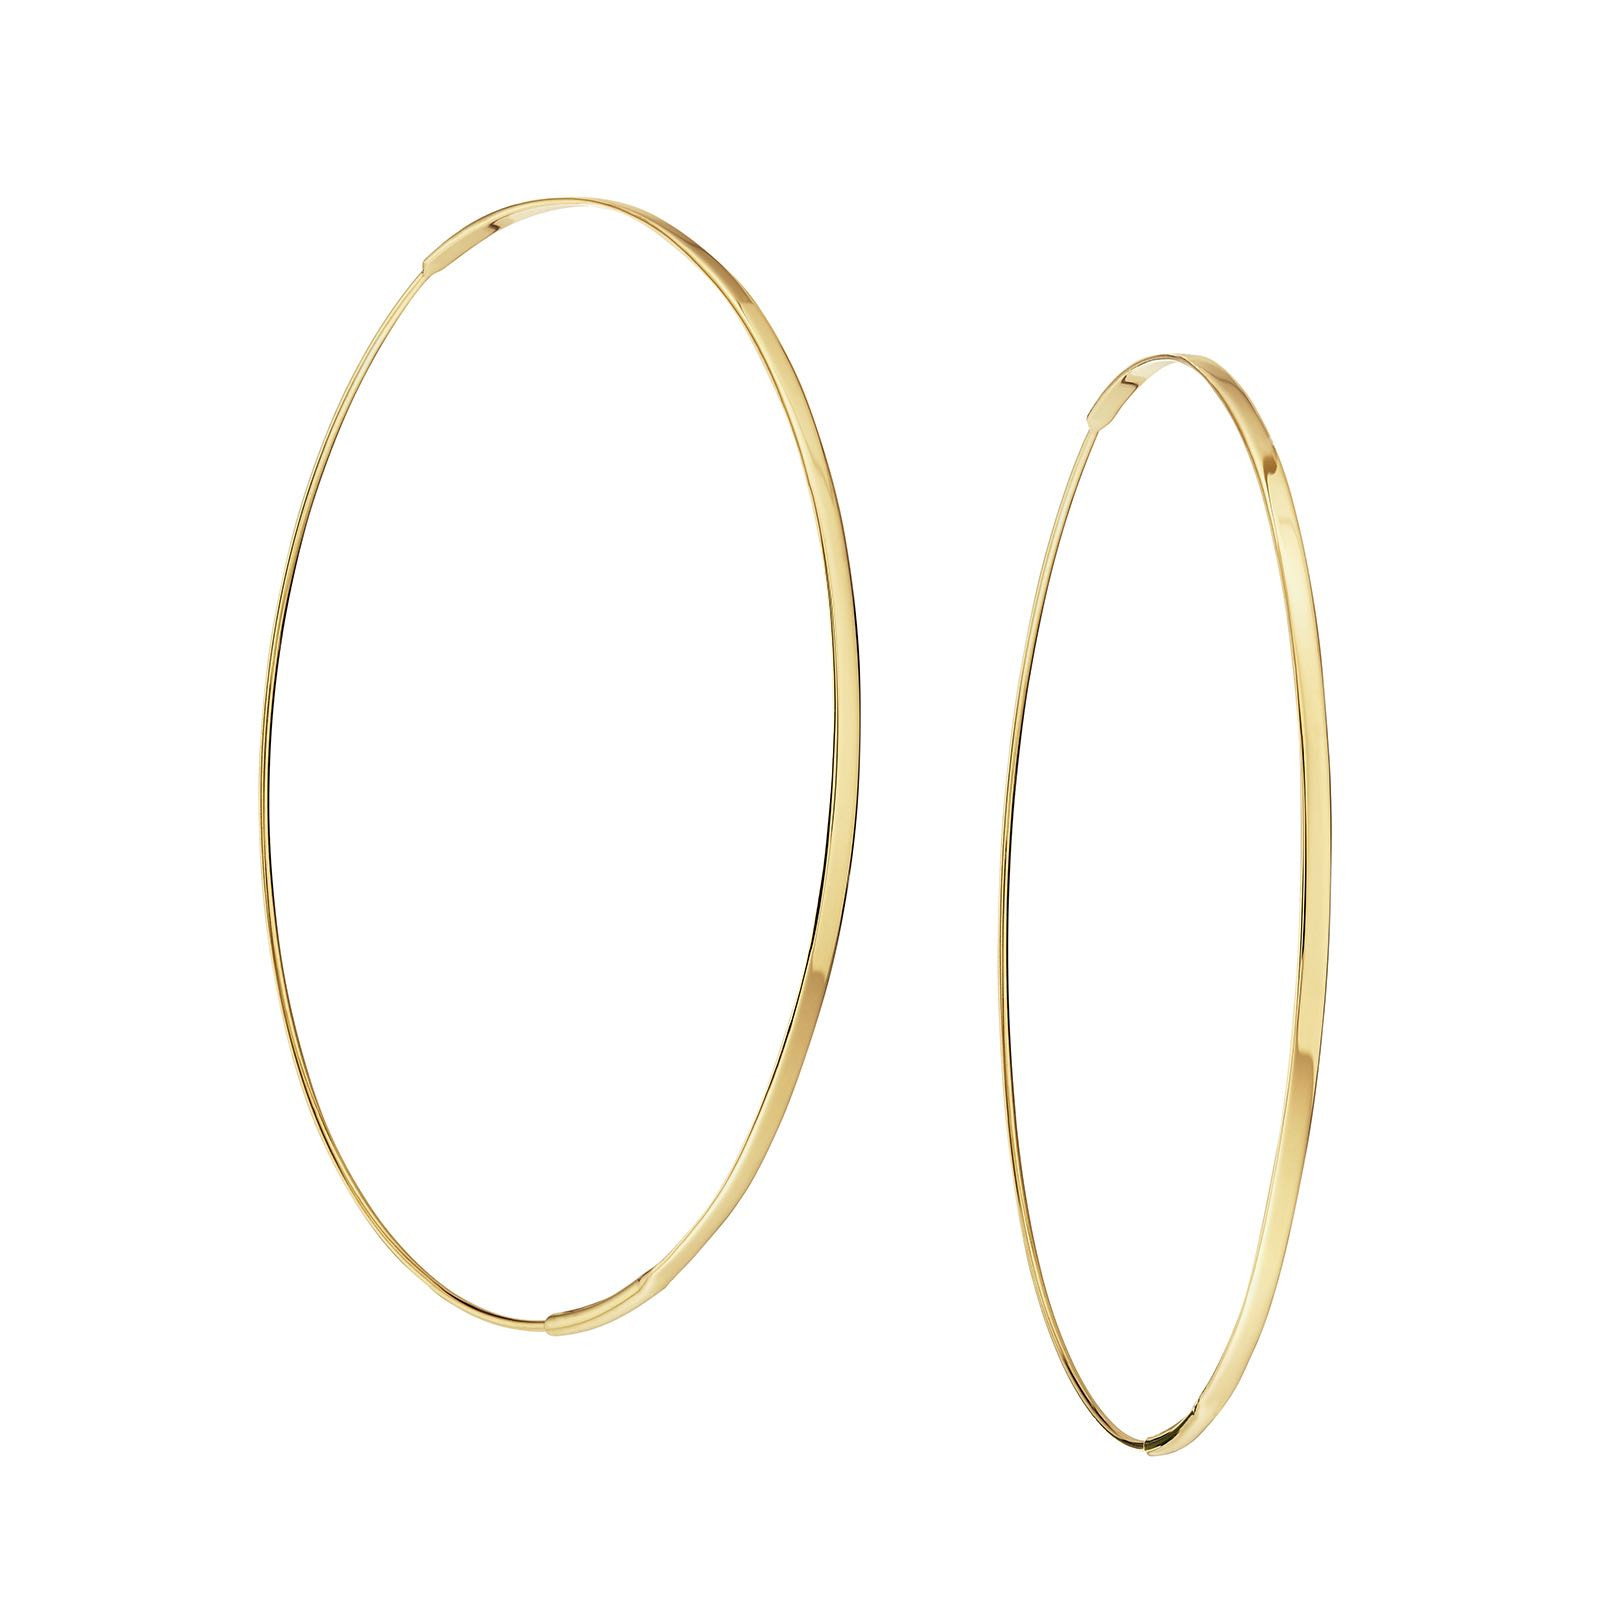 New Lana Flat Magic Hoop Earrings